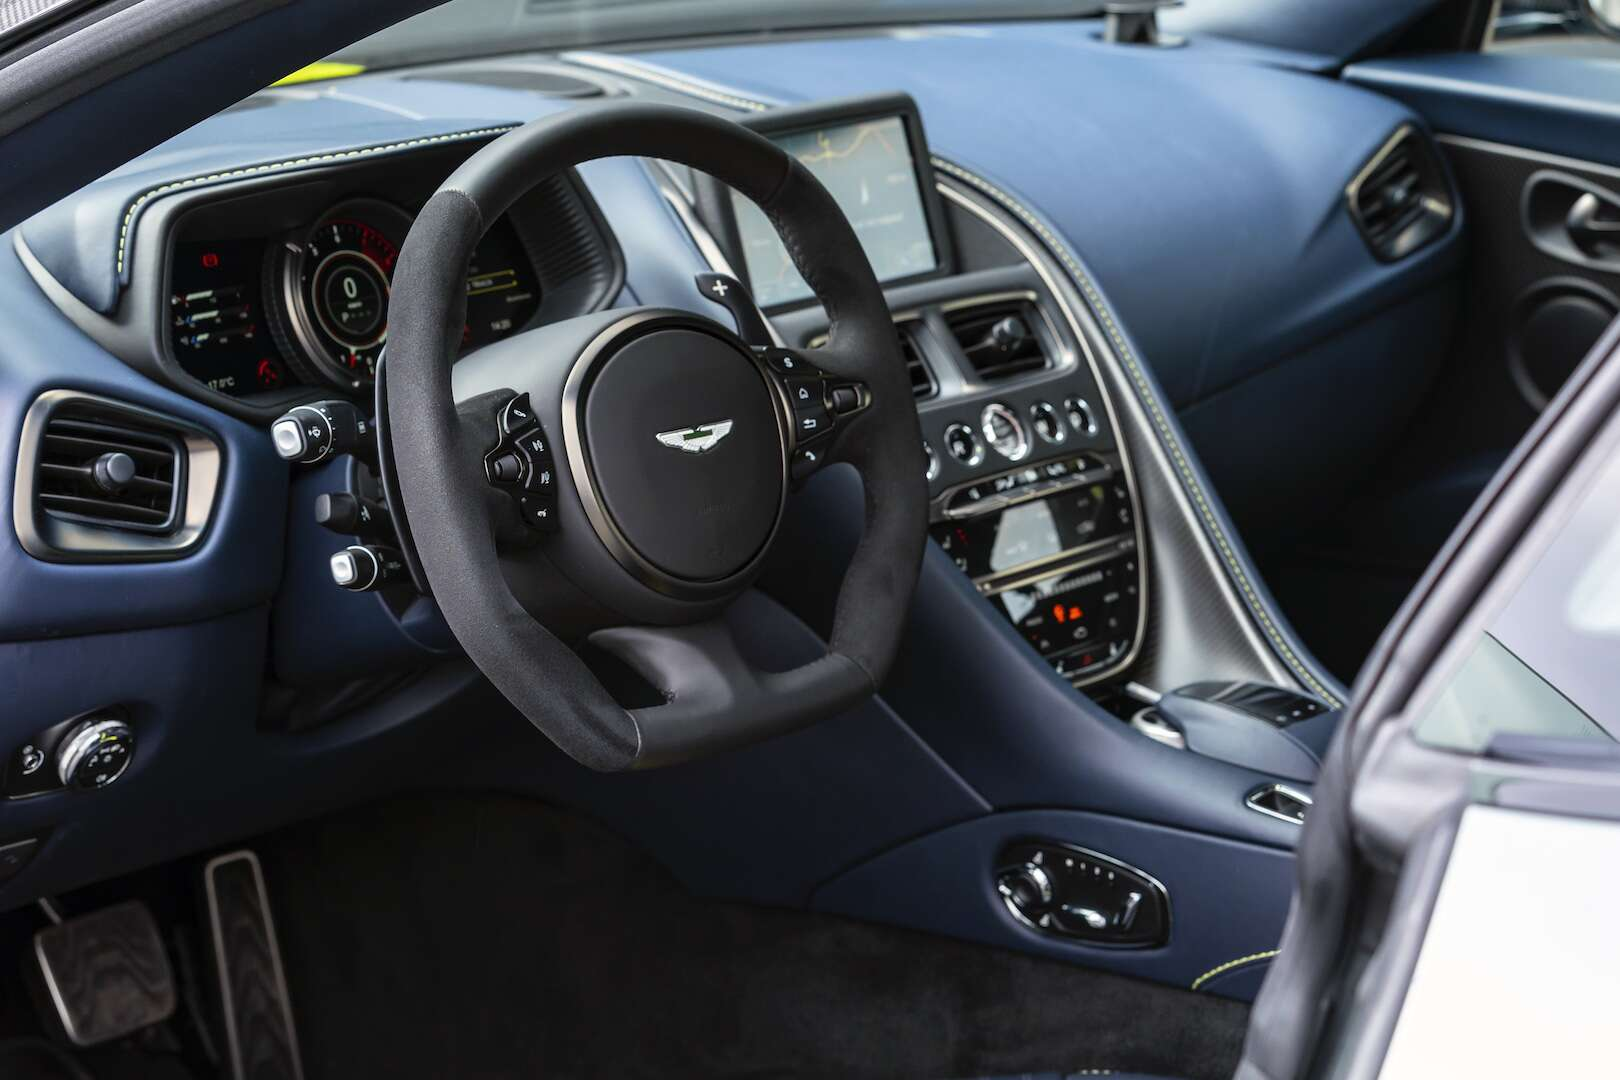 2019 Aston Martin Db11 Amr First Drive Review Aston Keeps Fussing